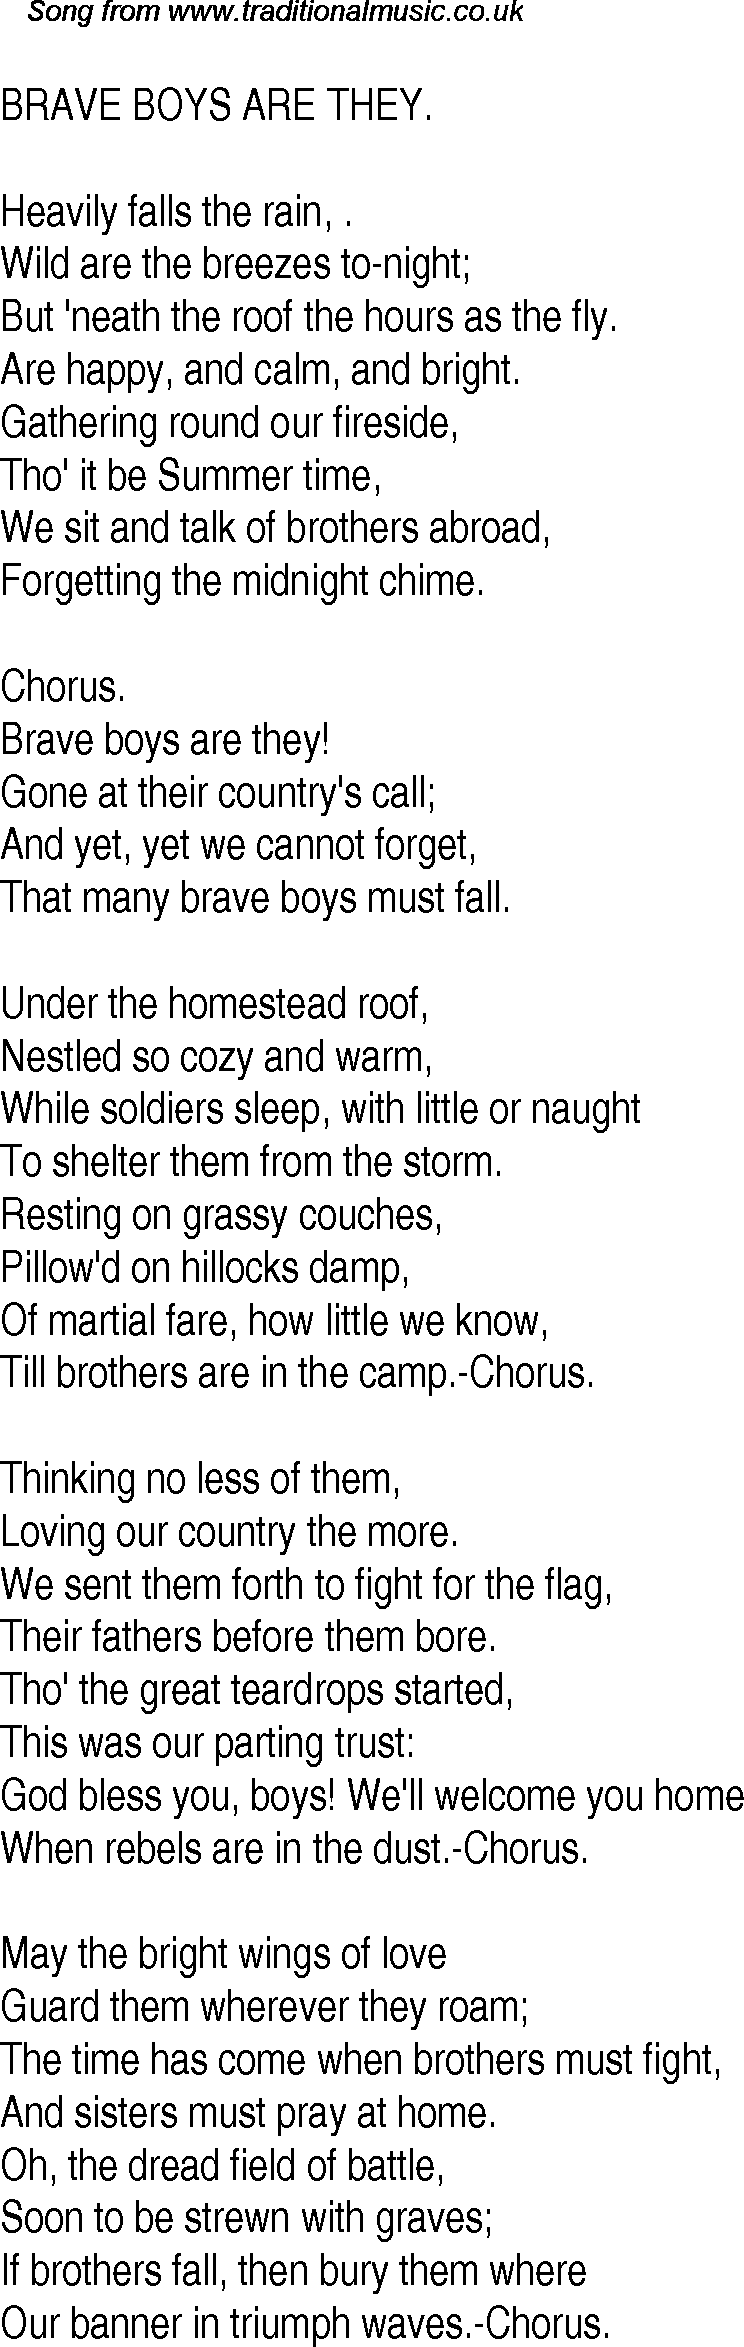 Old Time Song Lyrics for 13 Brave Boys Are They